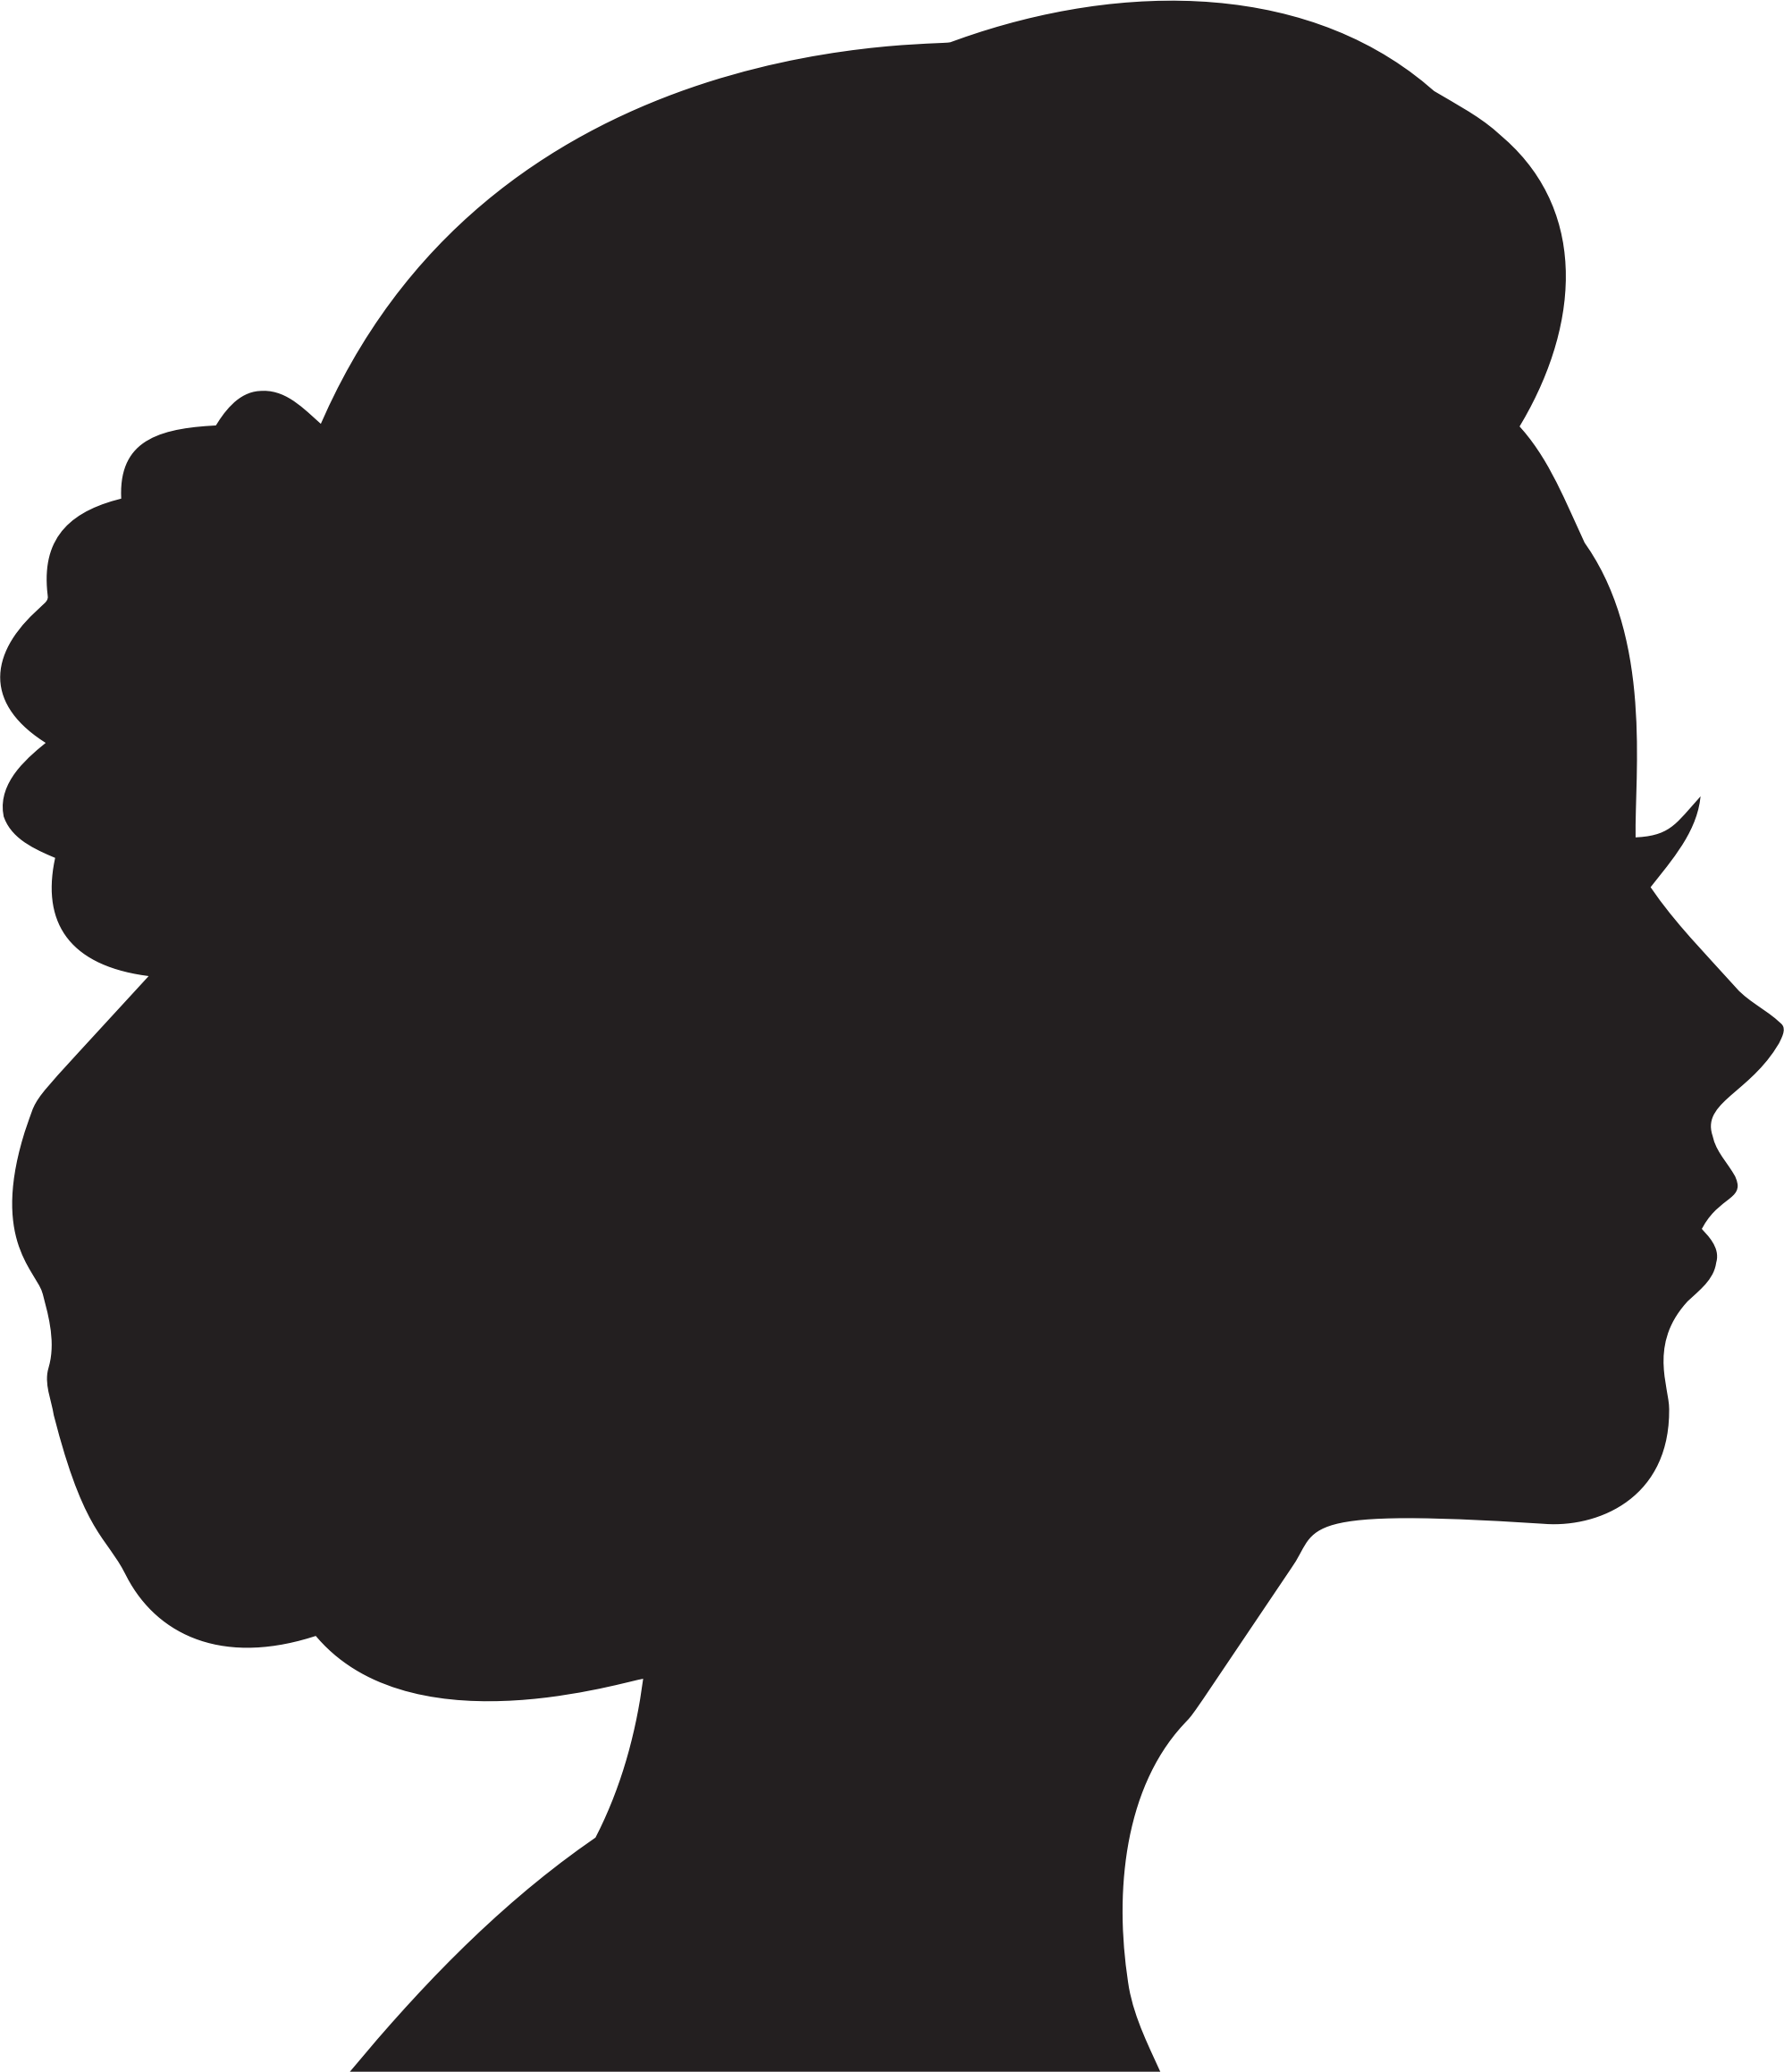 209ed5cea Woman Profile Silhouette Clipart | Free download best Woman Profile ...